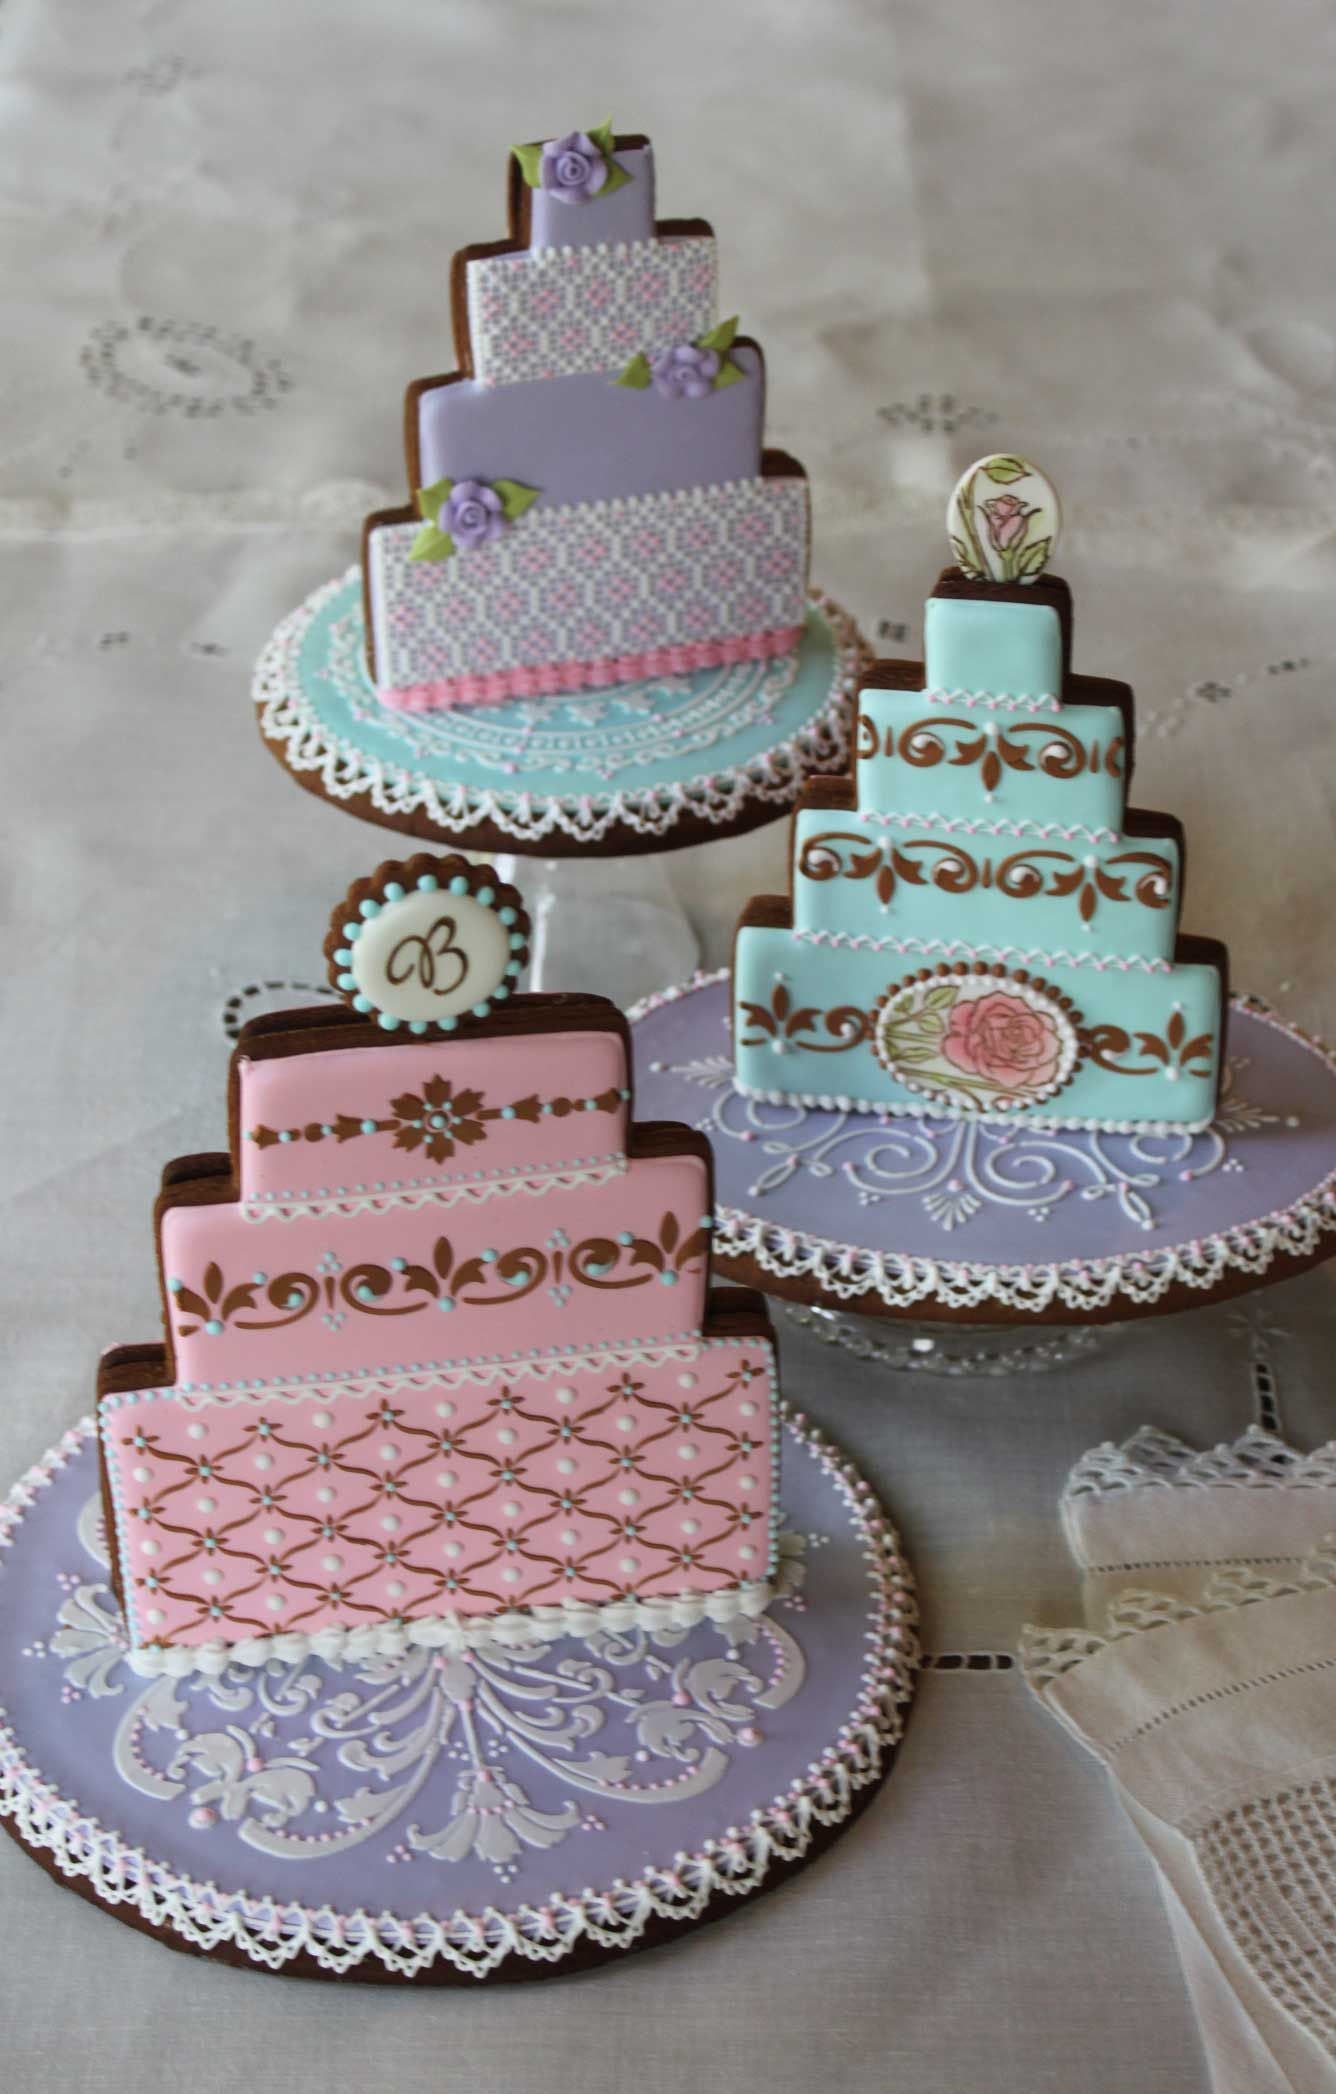 Stenciled And Needlepoint Wedding Cake Cookies By Julia M Usher